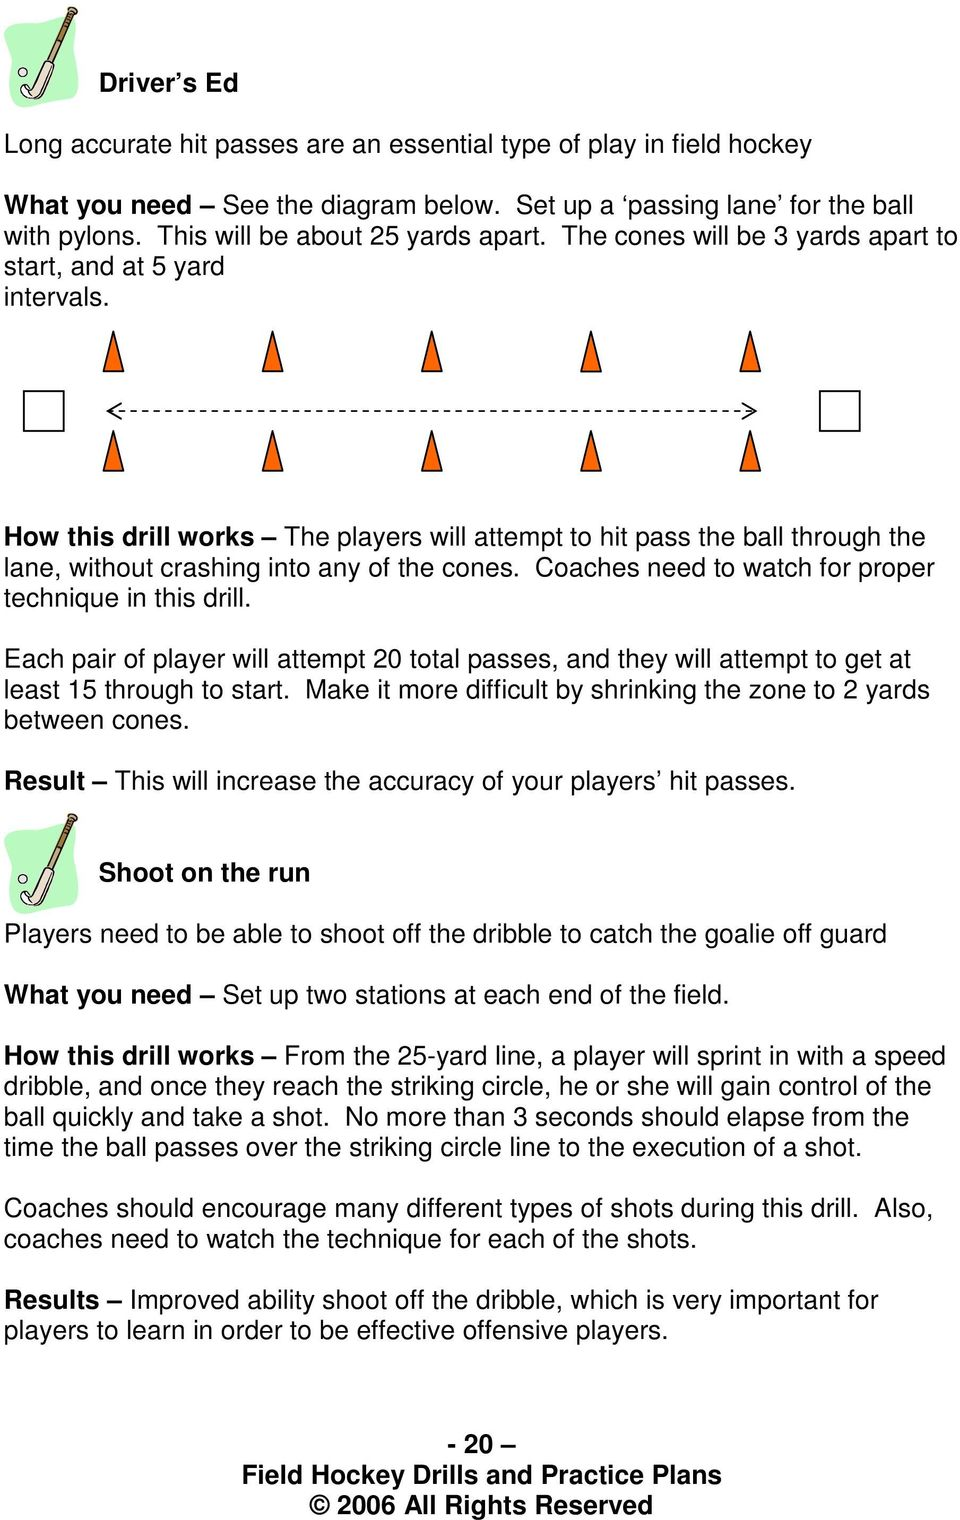 How this drill works The players will attempt to hit pass the ball through the lane, without crashing into any of the cones. Coaches need to watch for proper technique in this drill.